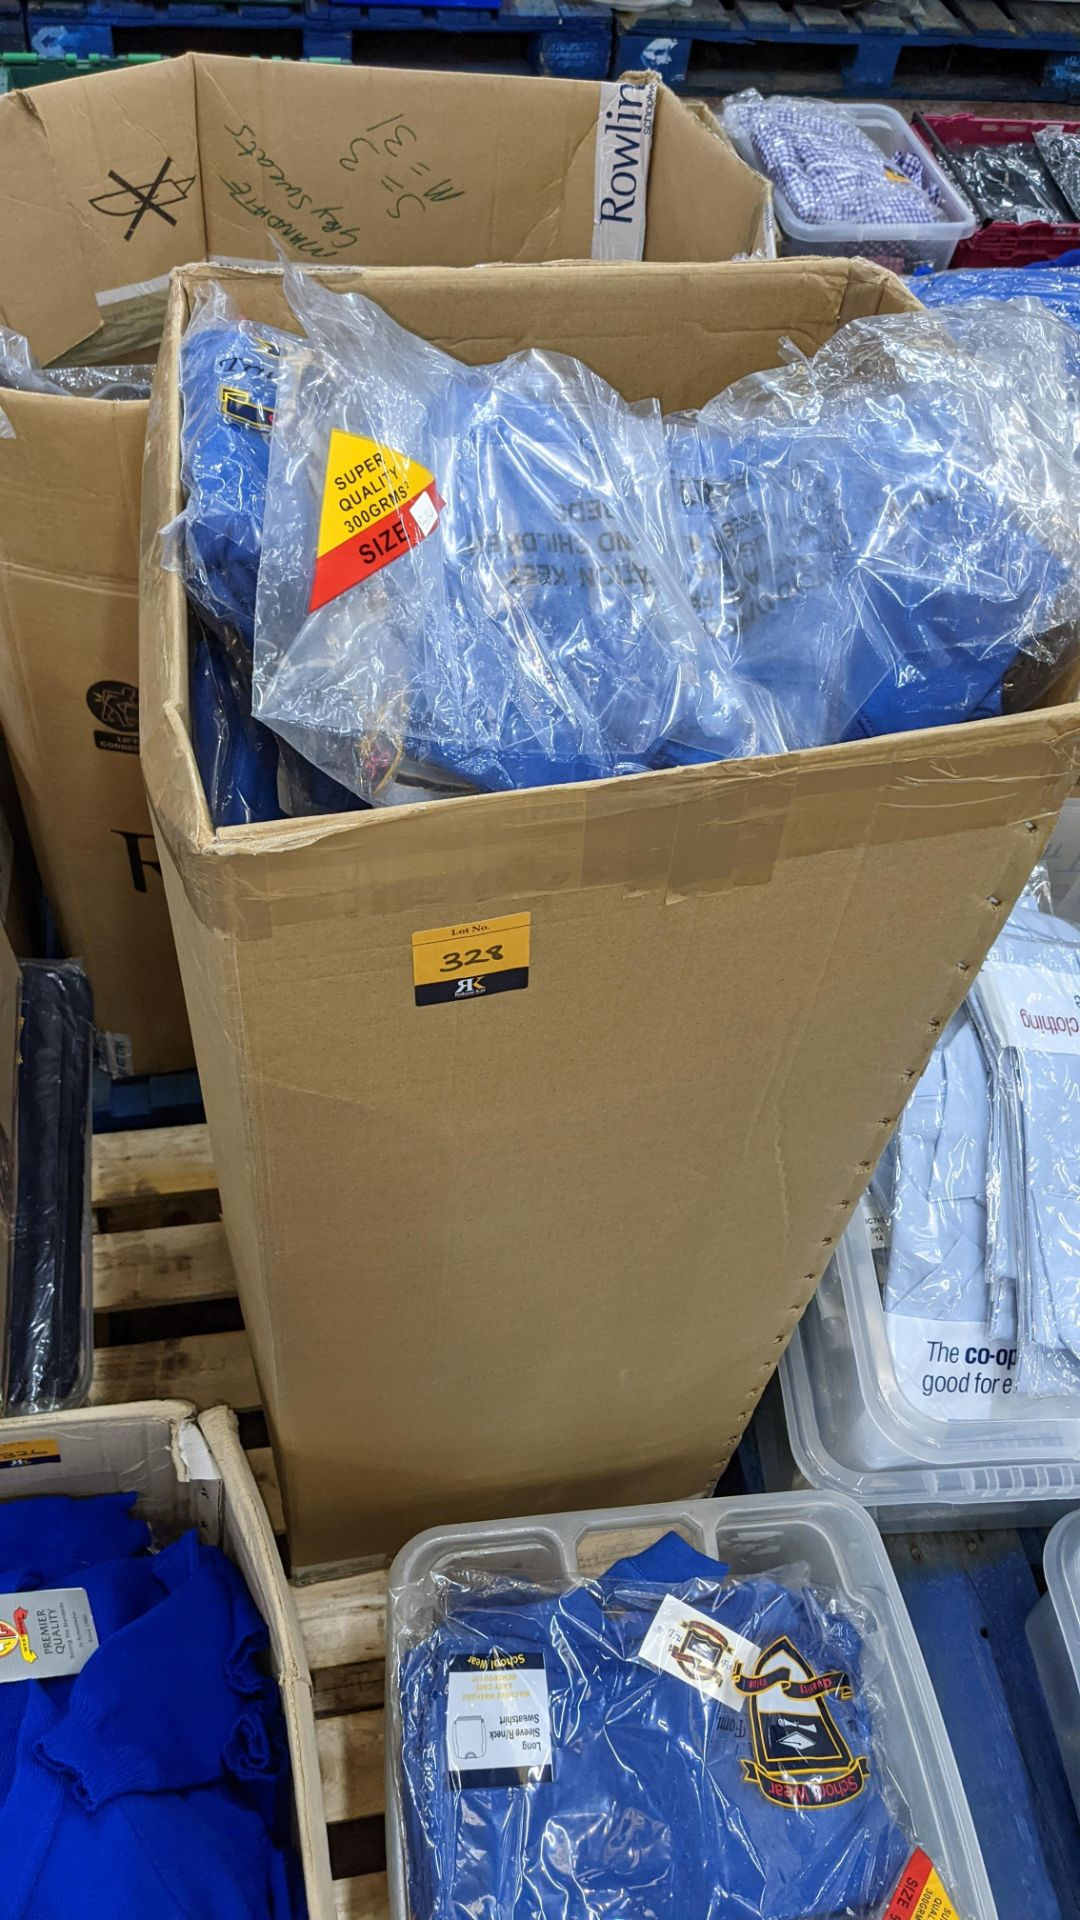 Approx 63 off blue children's sweatshirts - the contents of 1 tall box